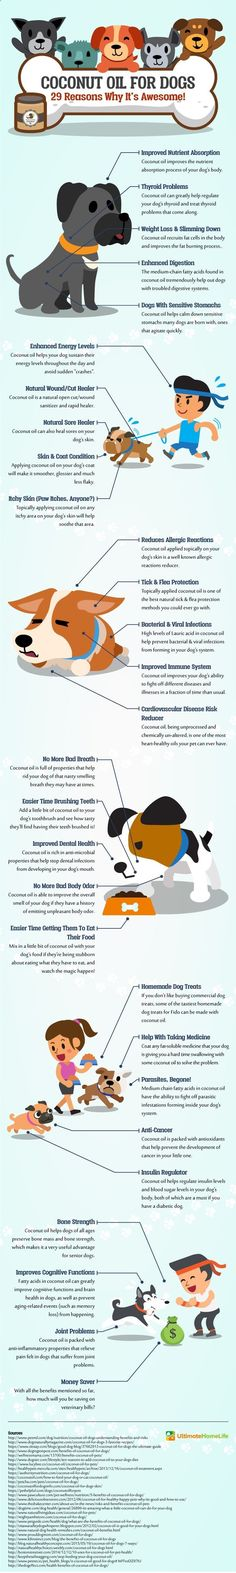 Use Coconut Oil Health Why Your Dog Needs Coconut Oil - Infographic 9 Reasons to Use Coconut Oil Daily Coconut Oil Will Set You Free — and Improve Your Health!Coconut Oil Fuels Your Metabolism!